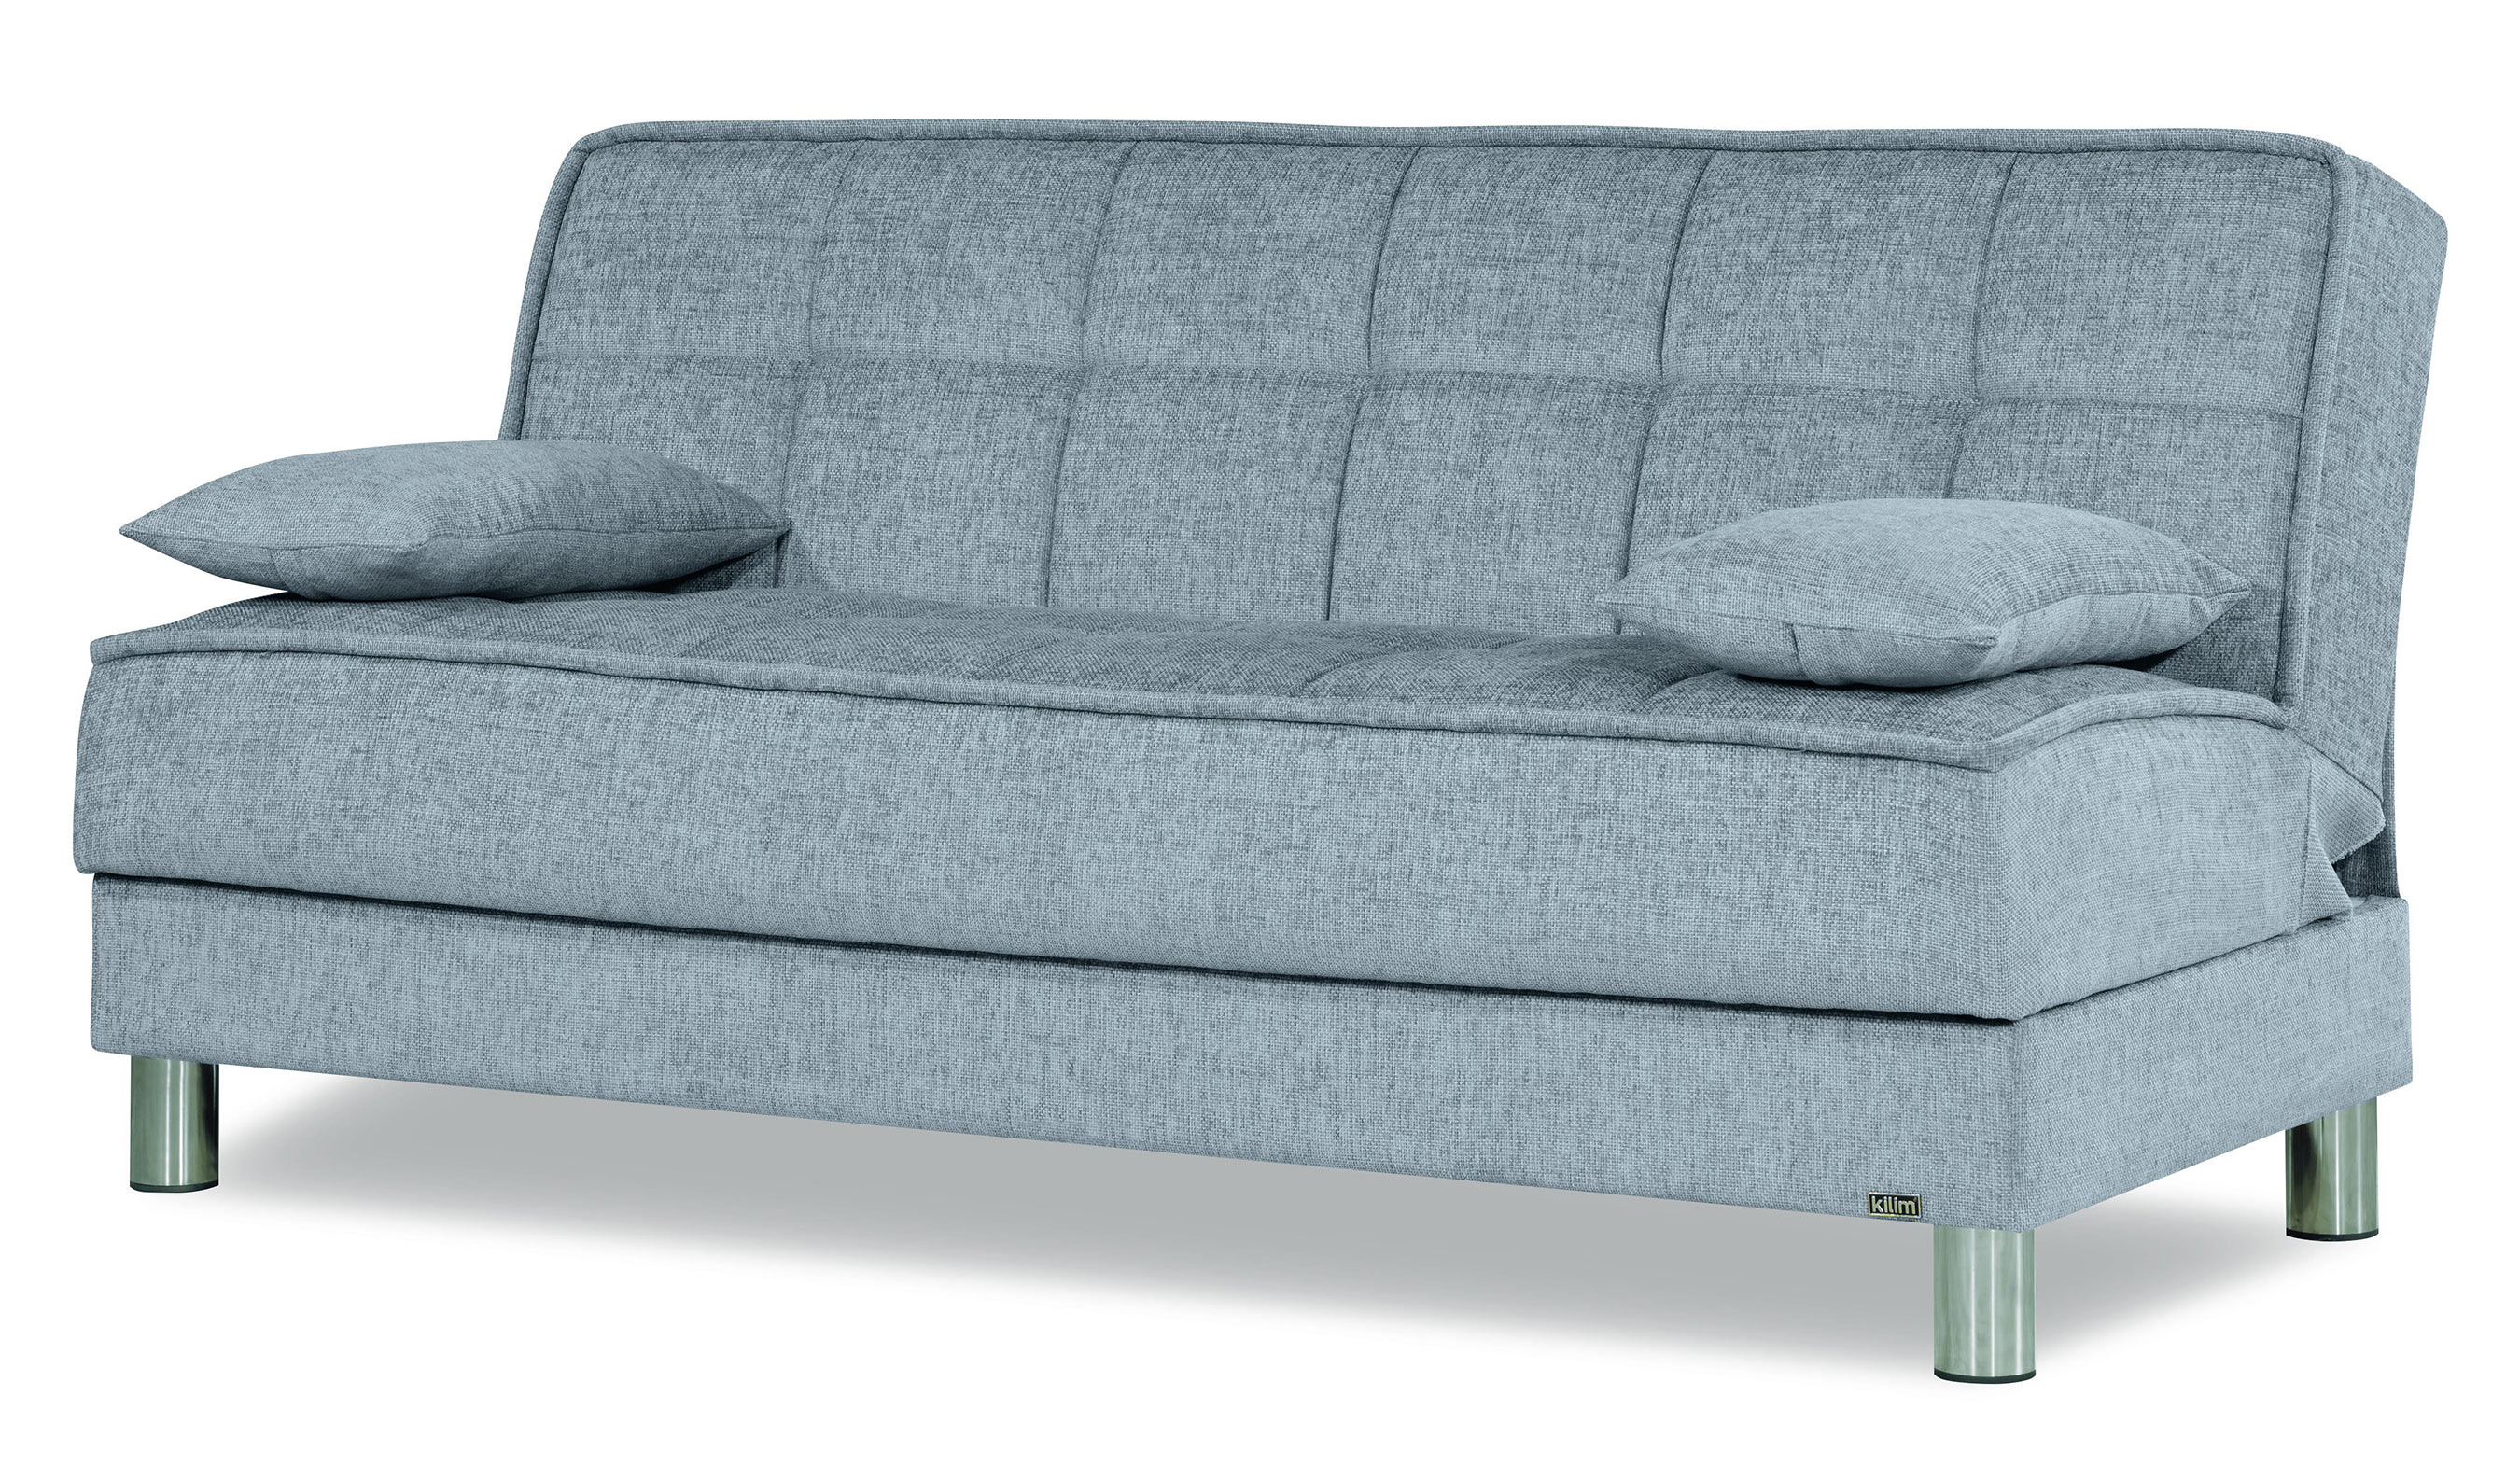 Smart Fit Gray Convertible Sofa by Casamode